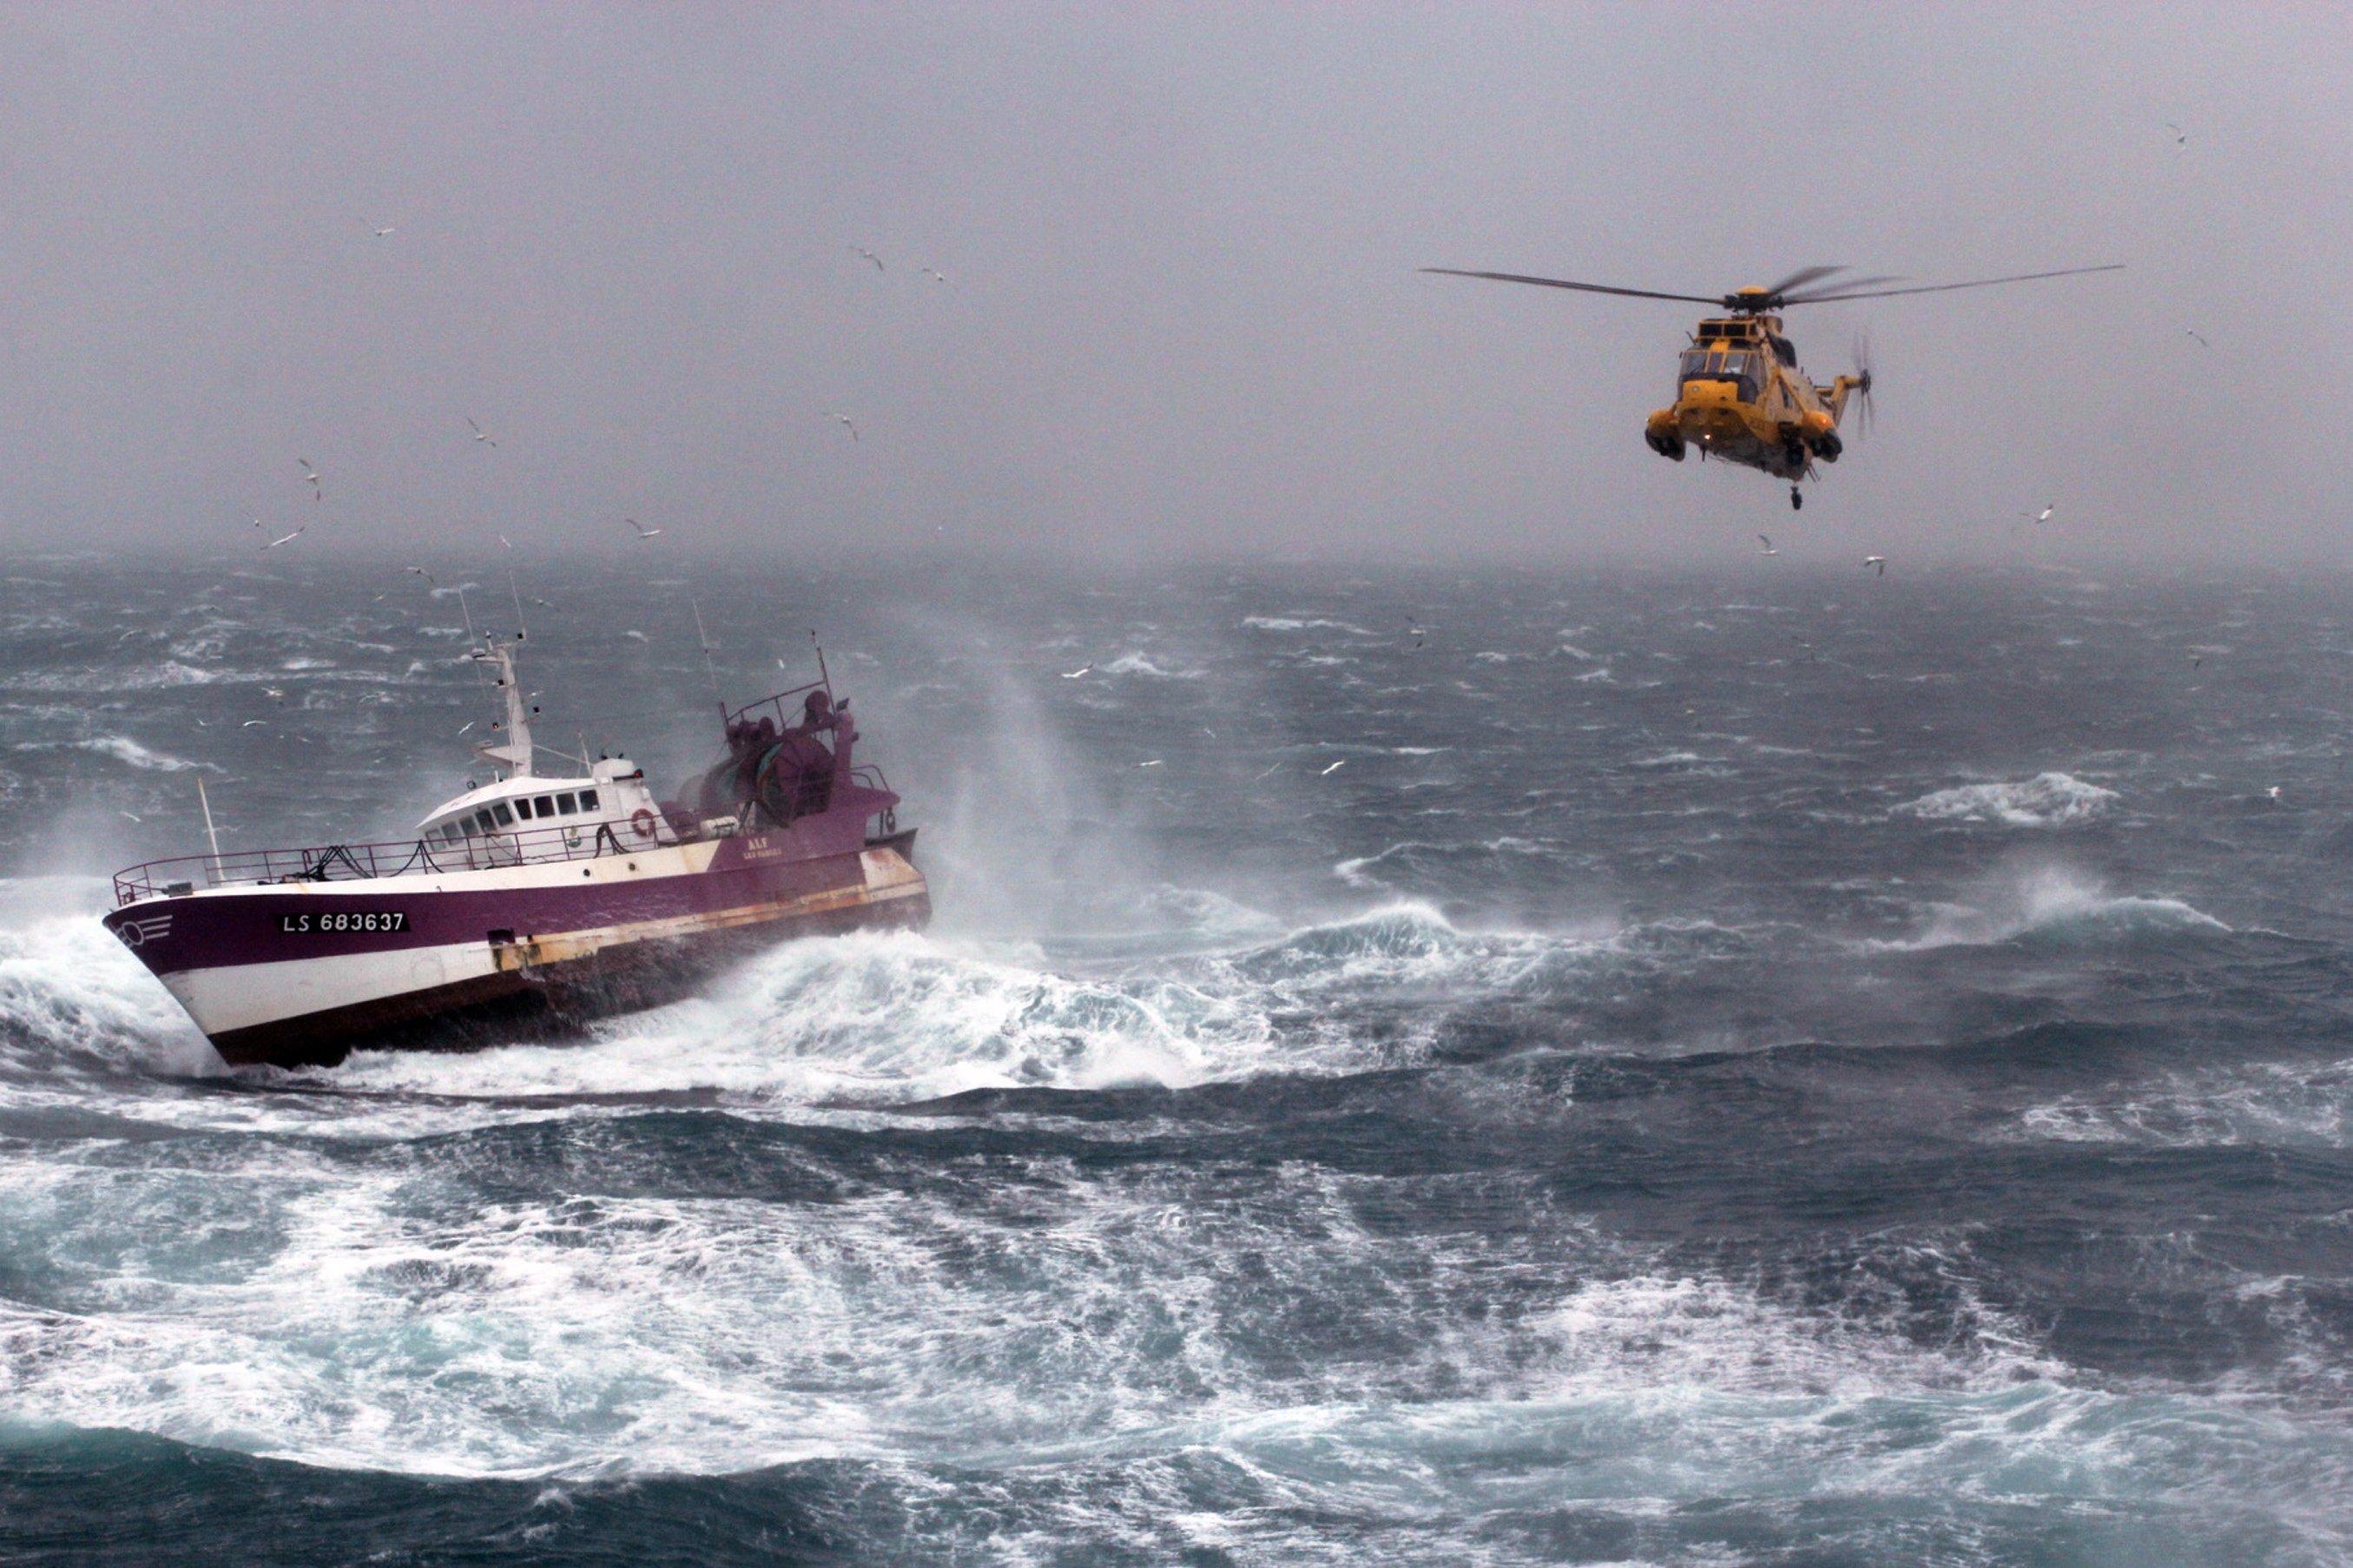 helicopters sale with File Royal Navy Sea King Helicopter  Es To The Aid Of French Fishing Vessel 'alf' In The Irish Sea Mod 45155248 on Leonardo in addition Hd Mini Bullet Camera likewise Mh 6 Little Bird also Weird Looking Aircraft Dont Look Like Able Fly likewise 246 Boeing 747 400.